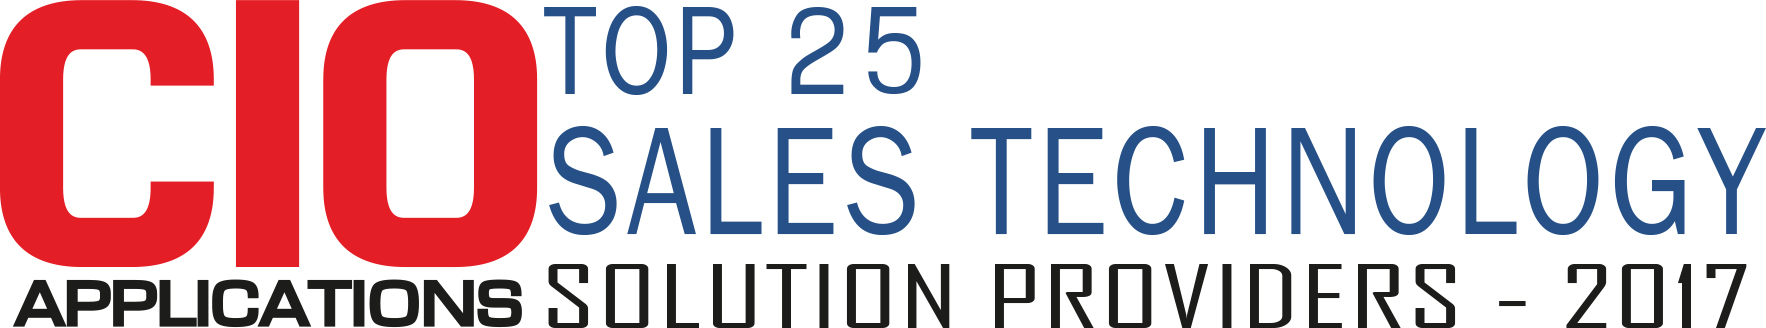 Top 25 Companies Providing Sales Technology Solution - 2017